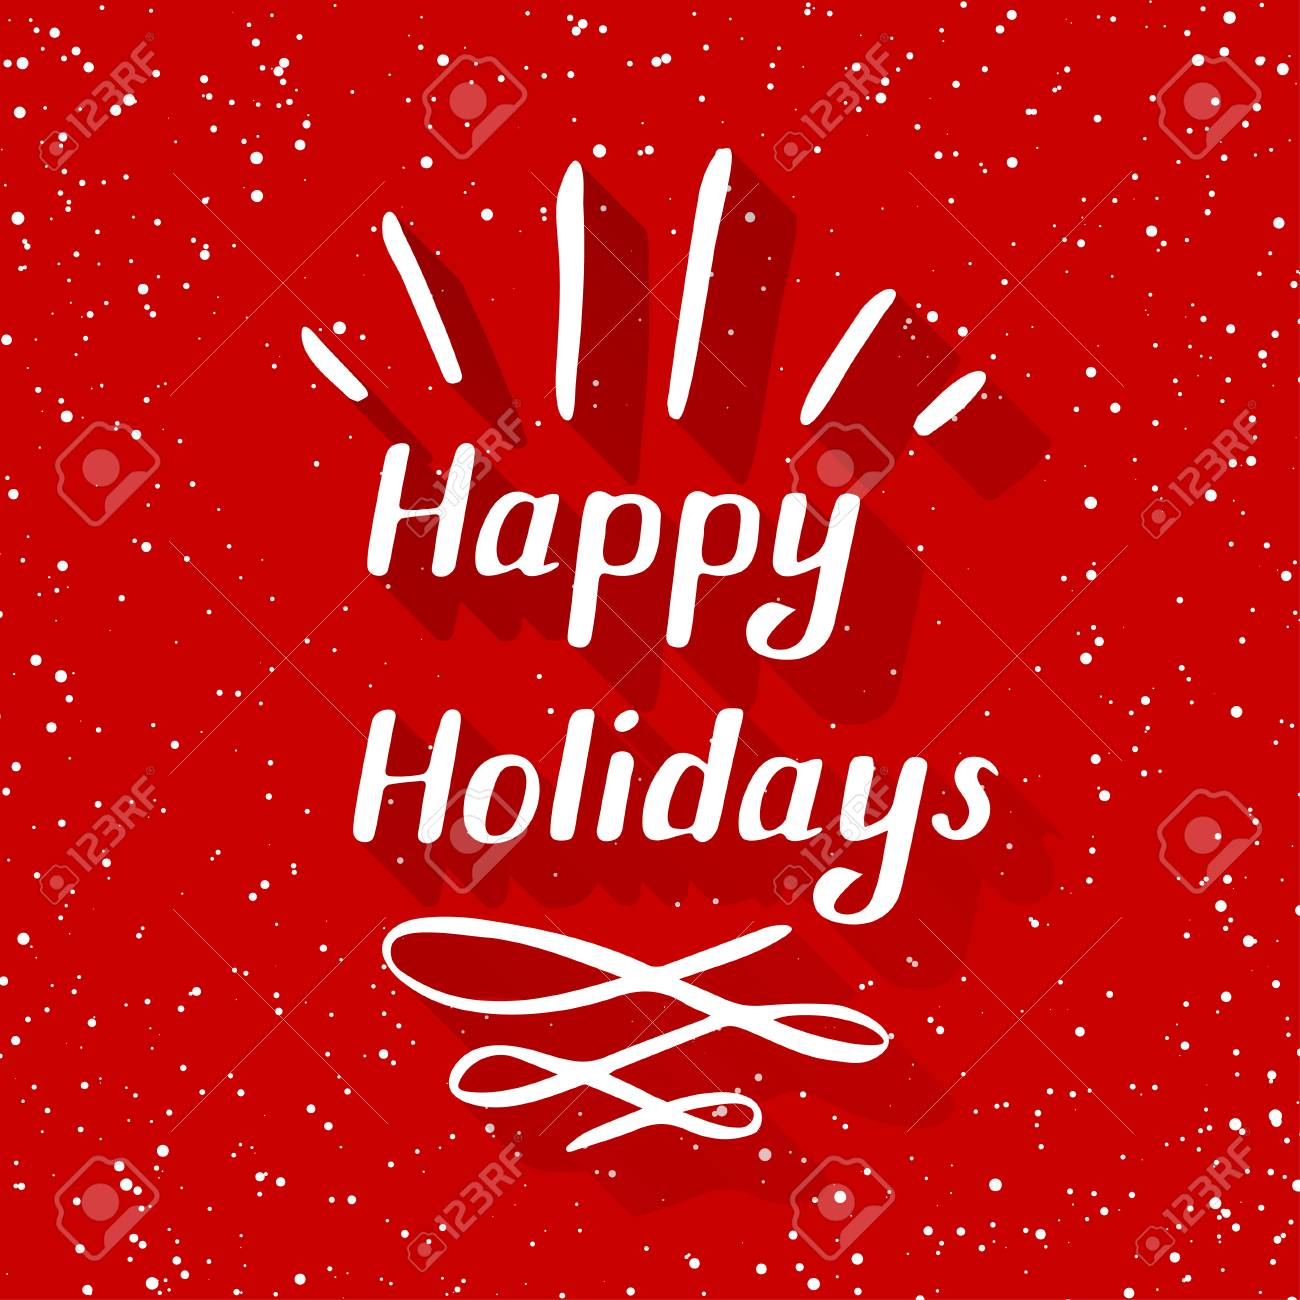 Happy Holidays Small Stock Photo Picture And Royalty Free Image